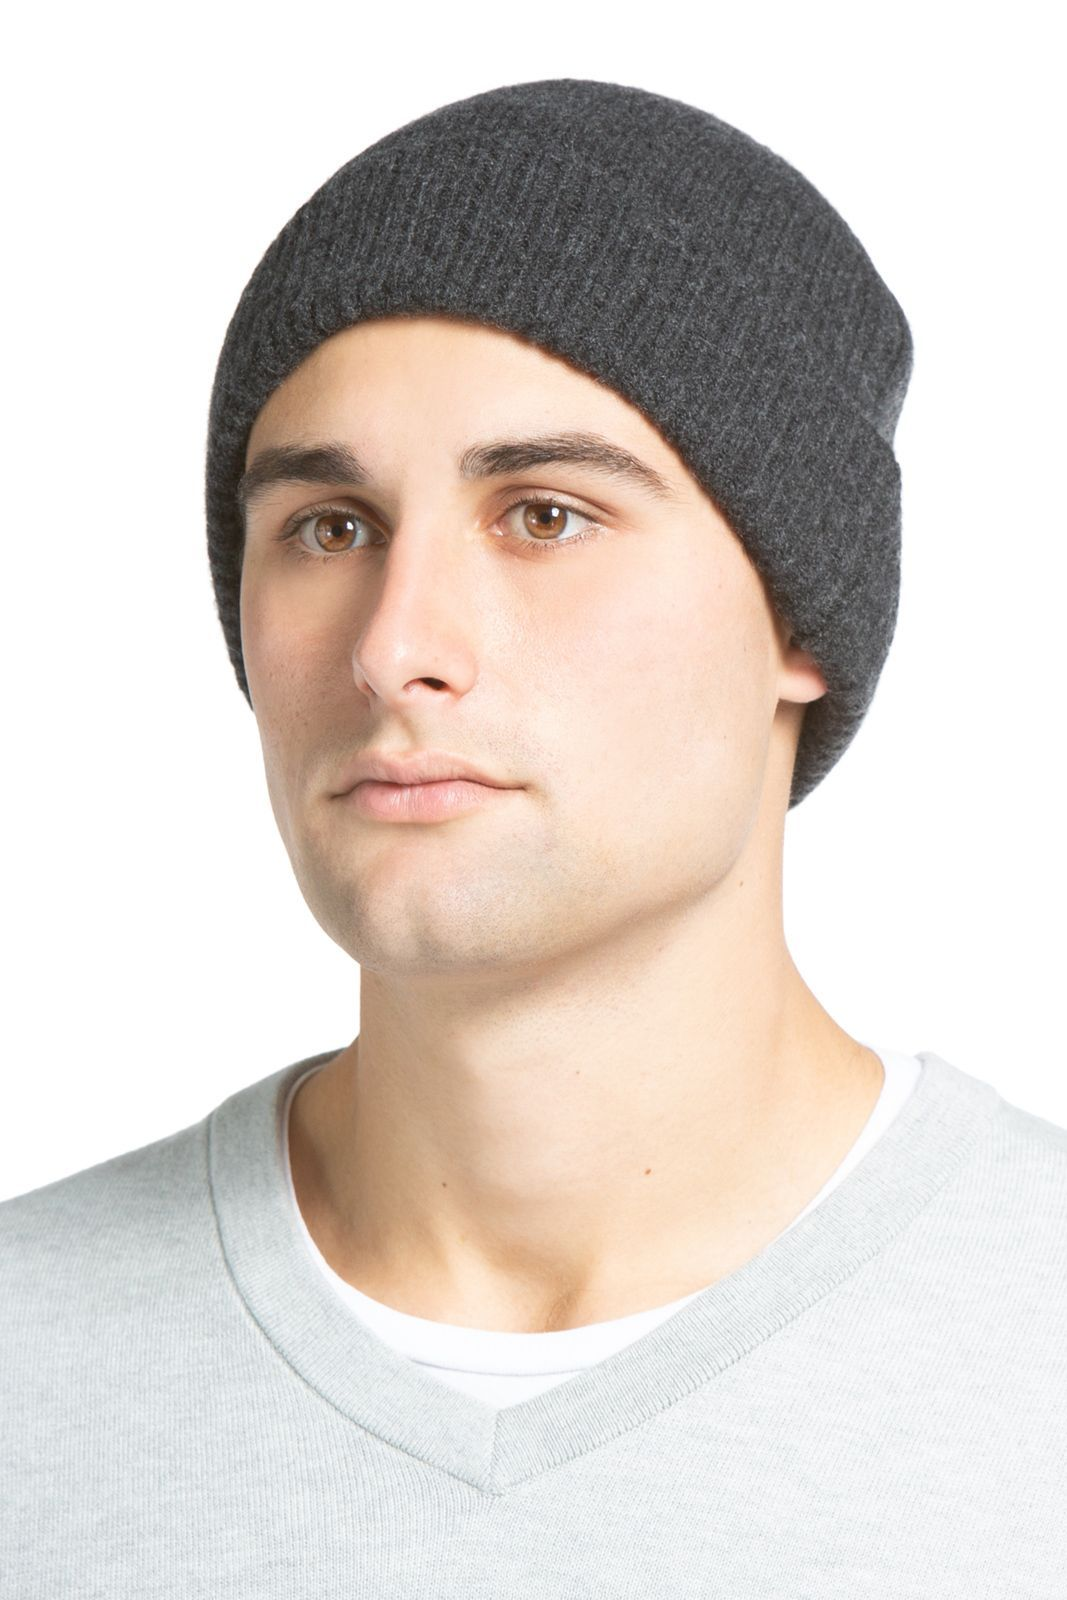 b2668694c4f88 Mens Beanies | Cashmere Beanie | Cashmere Hat| Fishers Finery